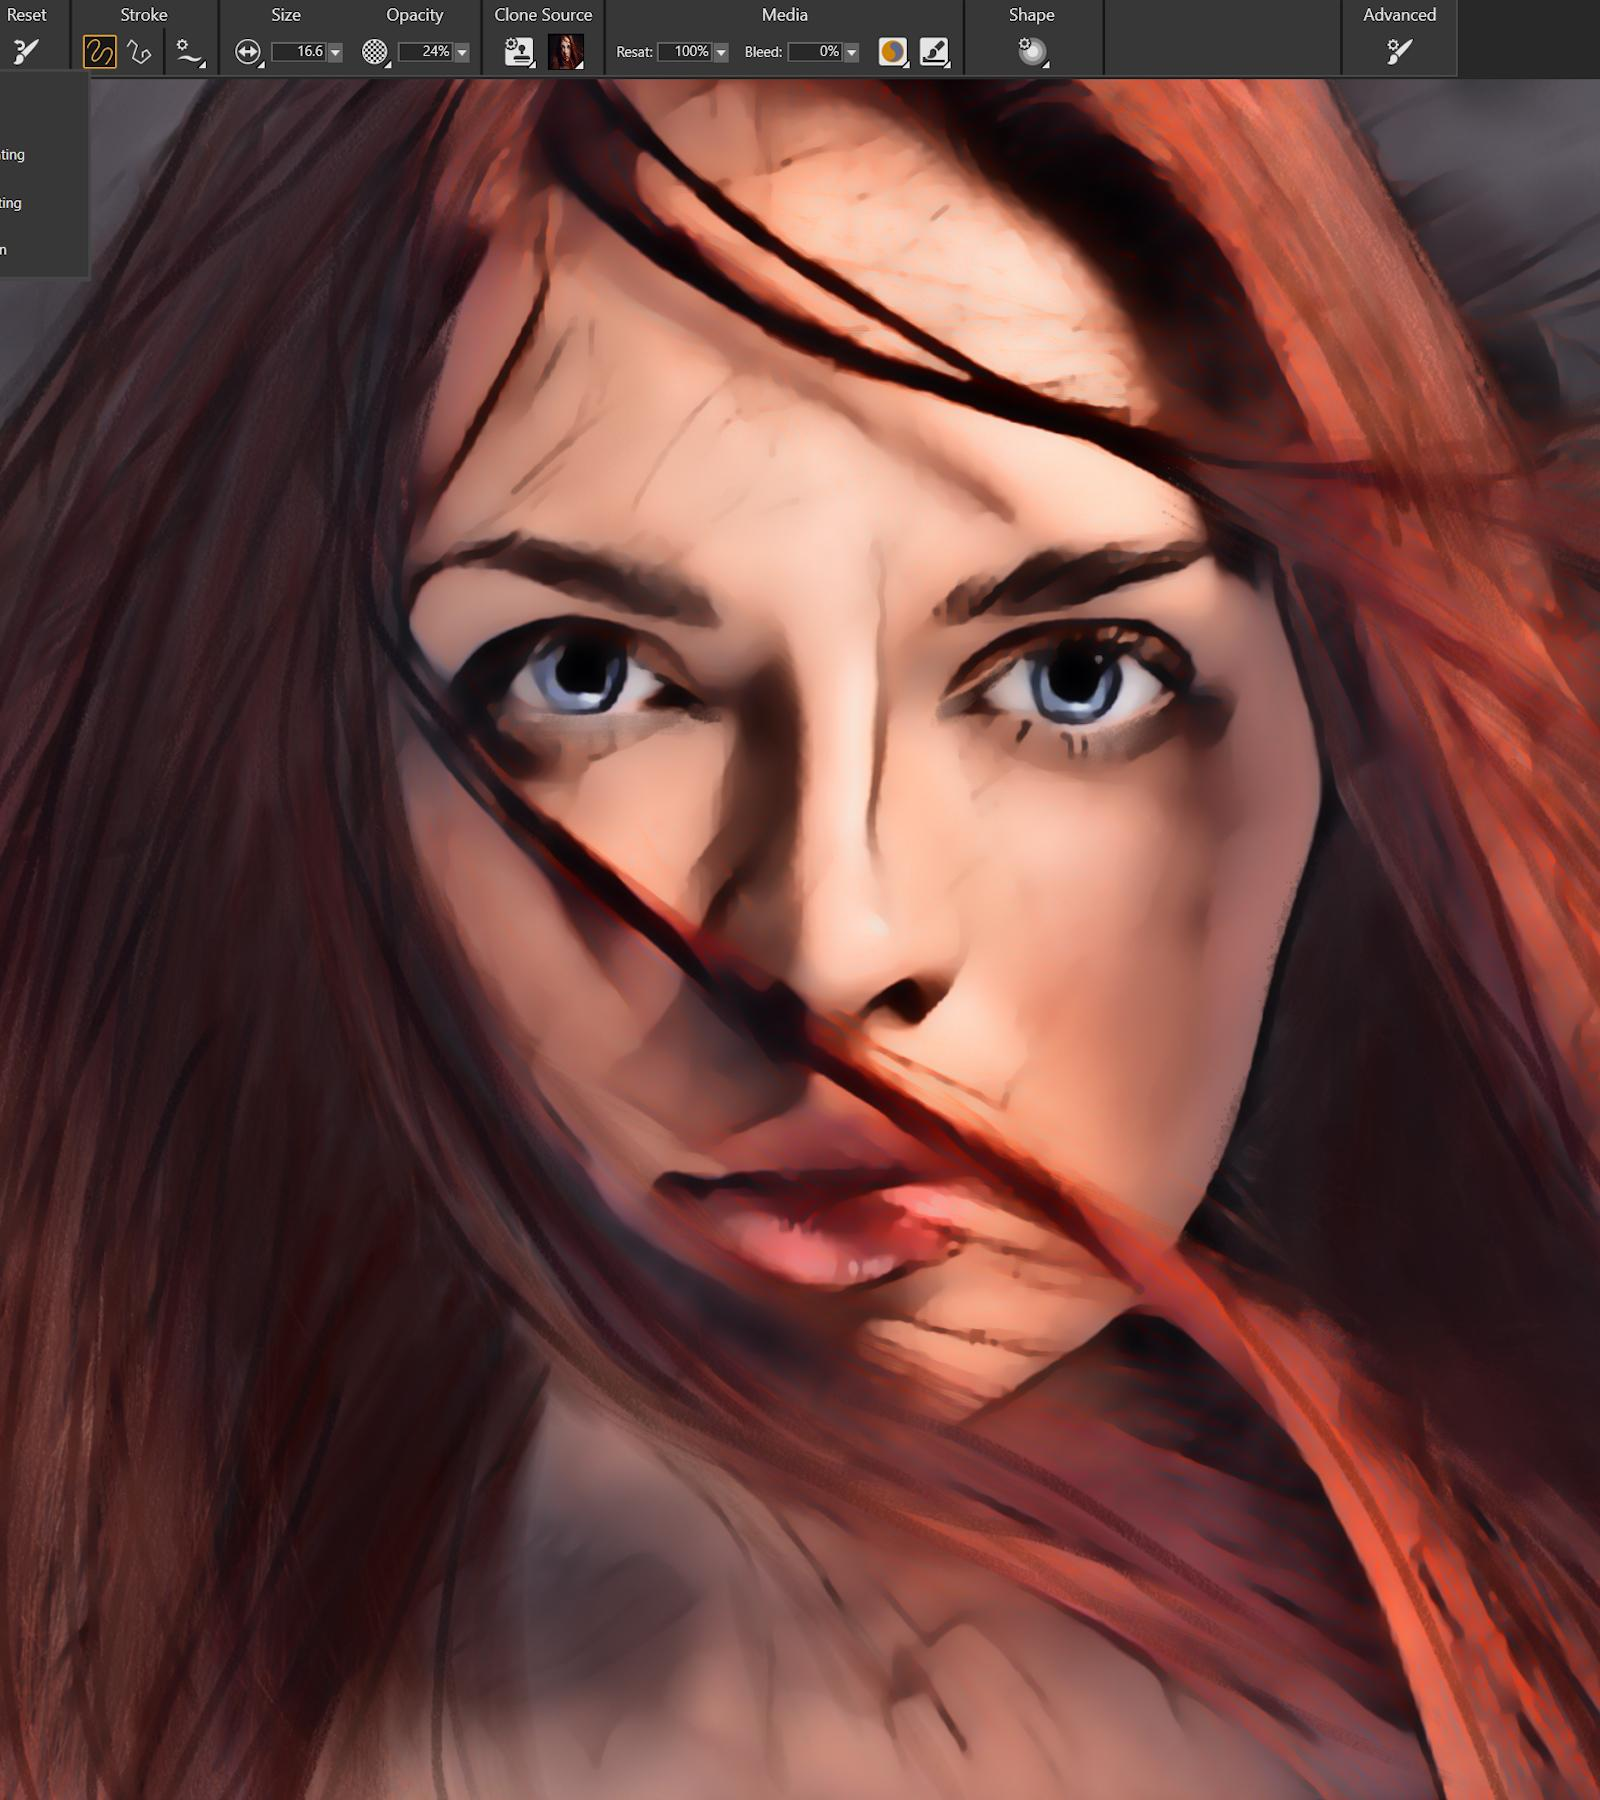 Discover The 10 Best Digital Painting Apps For Mac And Pc Digital Arts